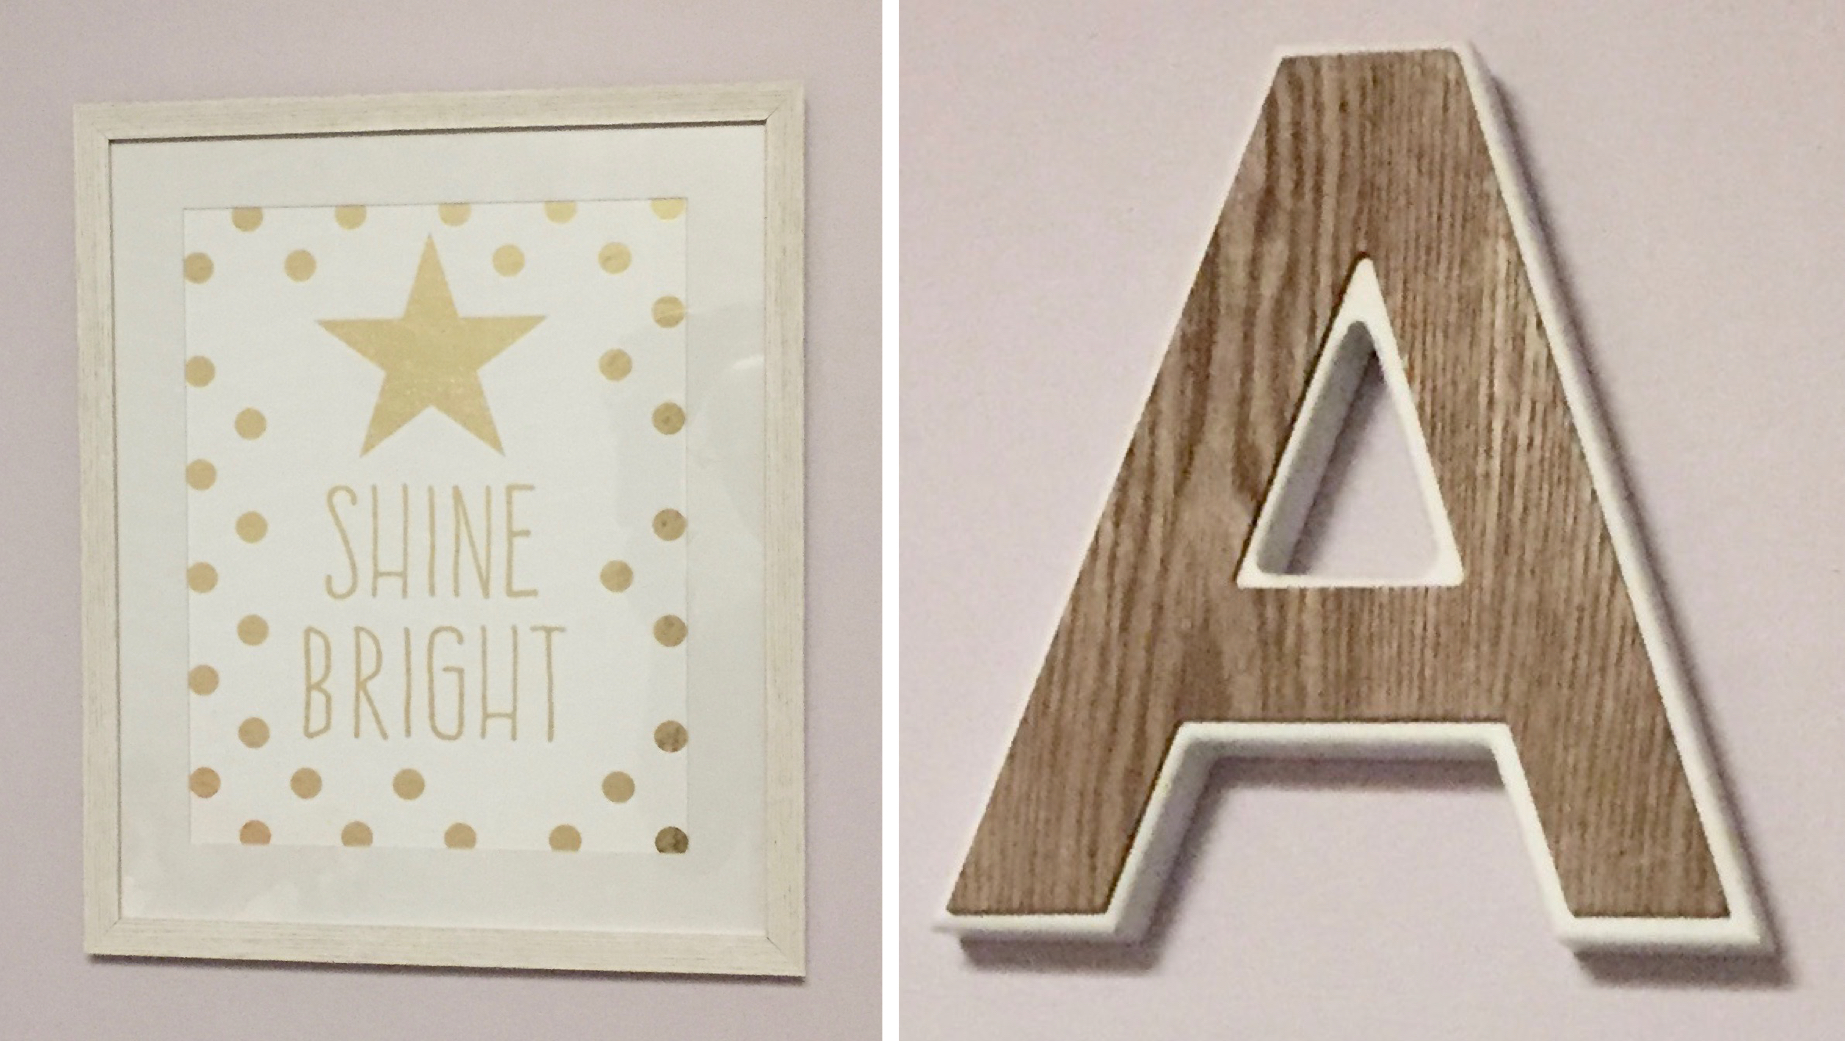 """The """"Shine Bright"""" picture is shiny gold which ties into some of the other metallic elements in the room."""